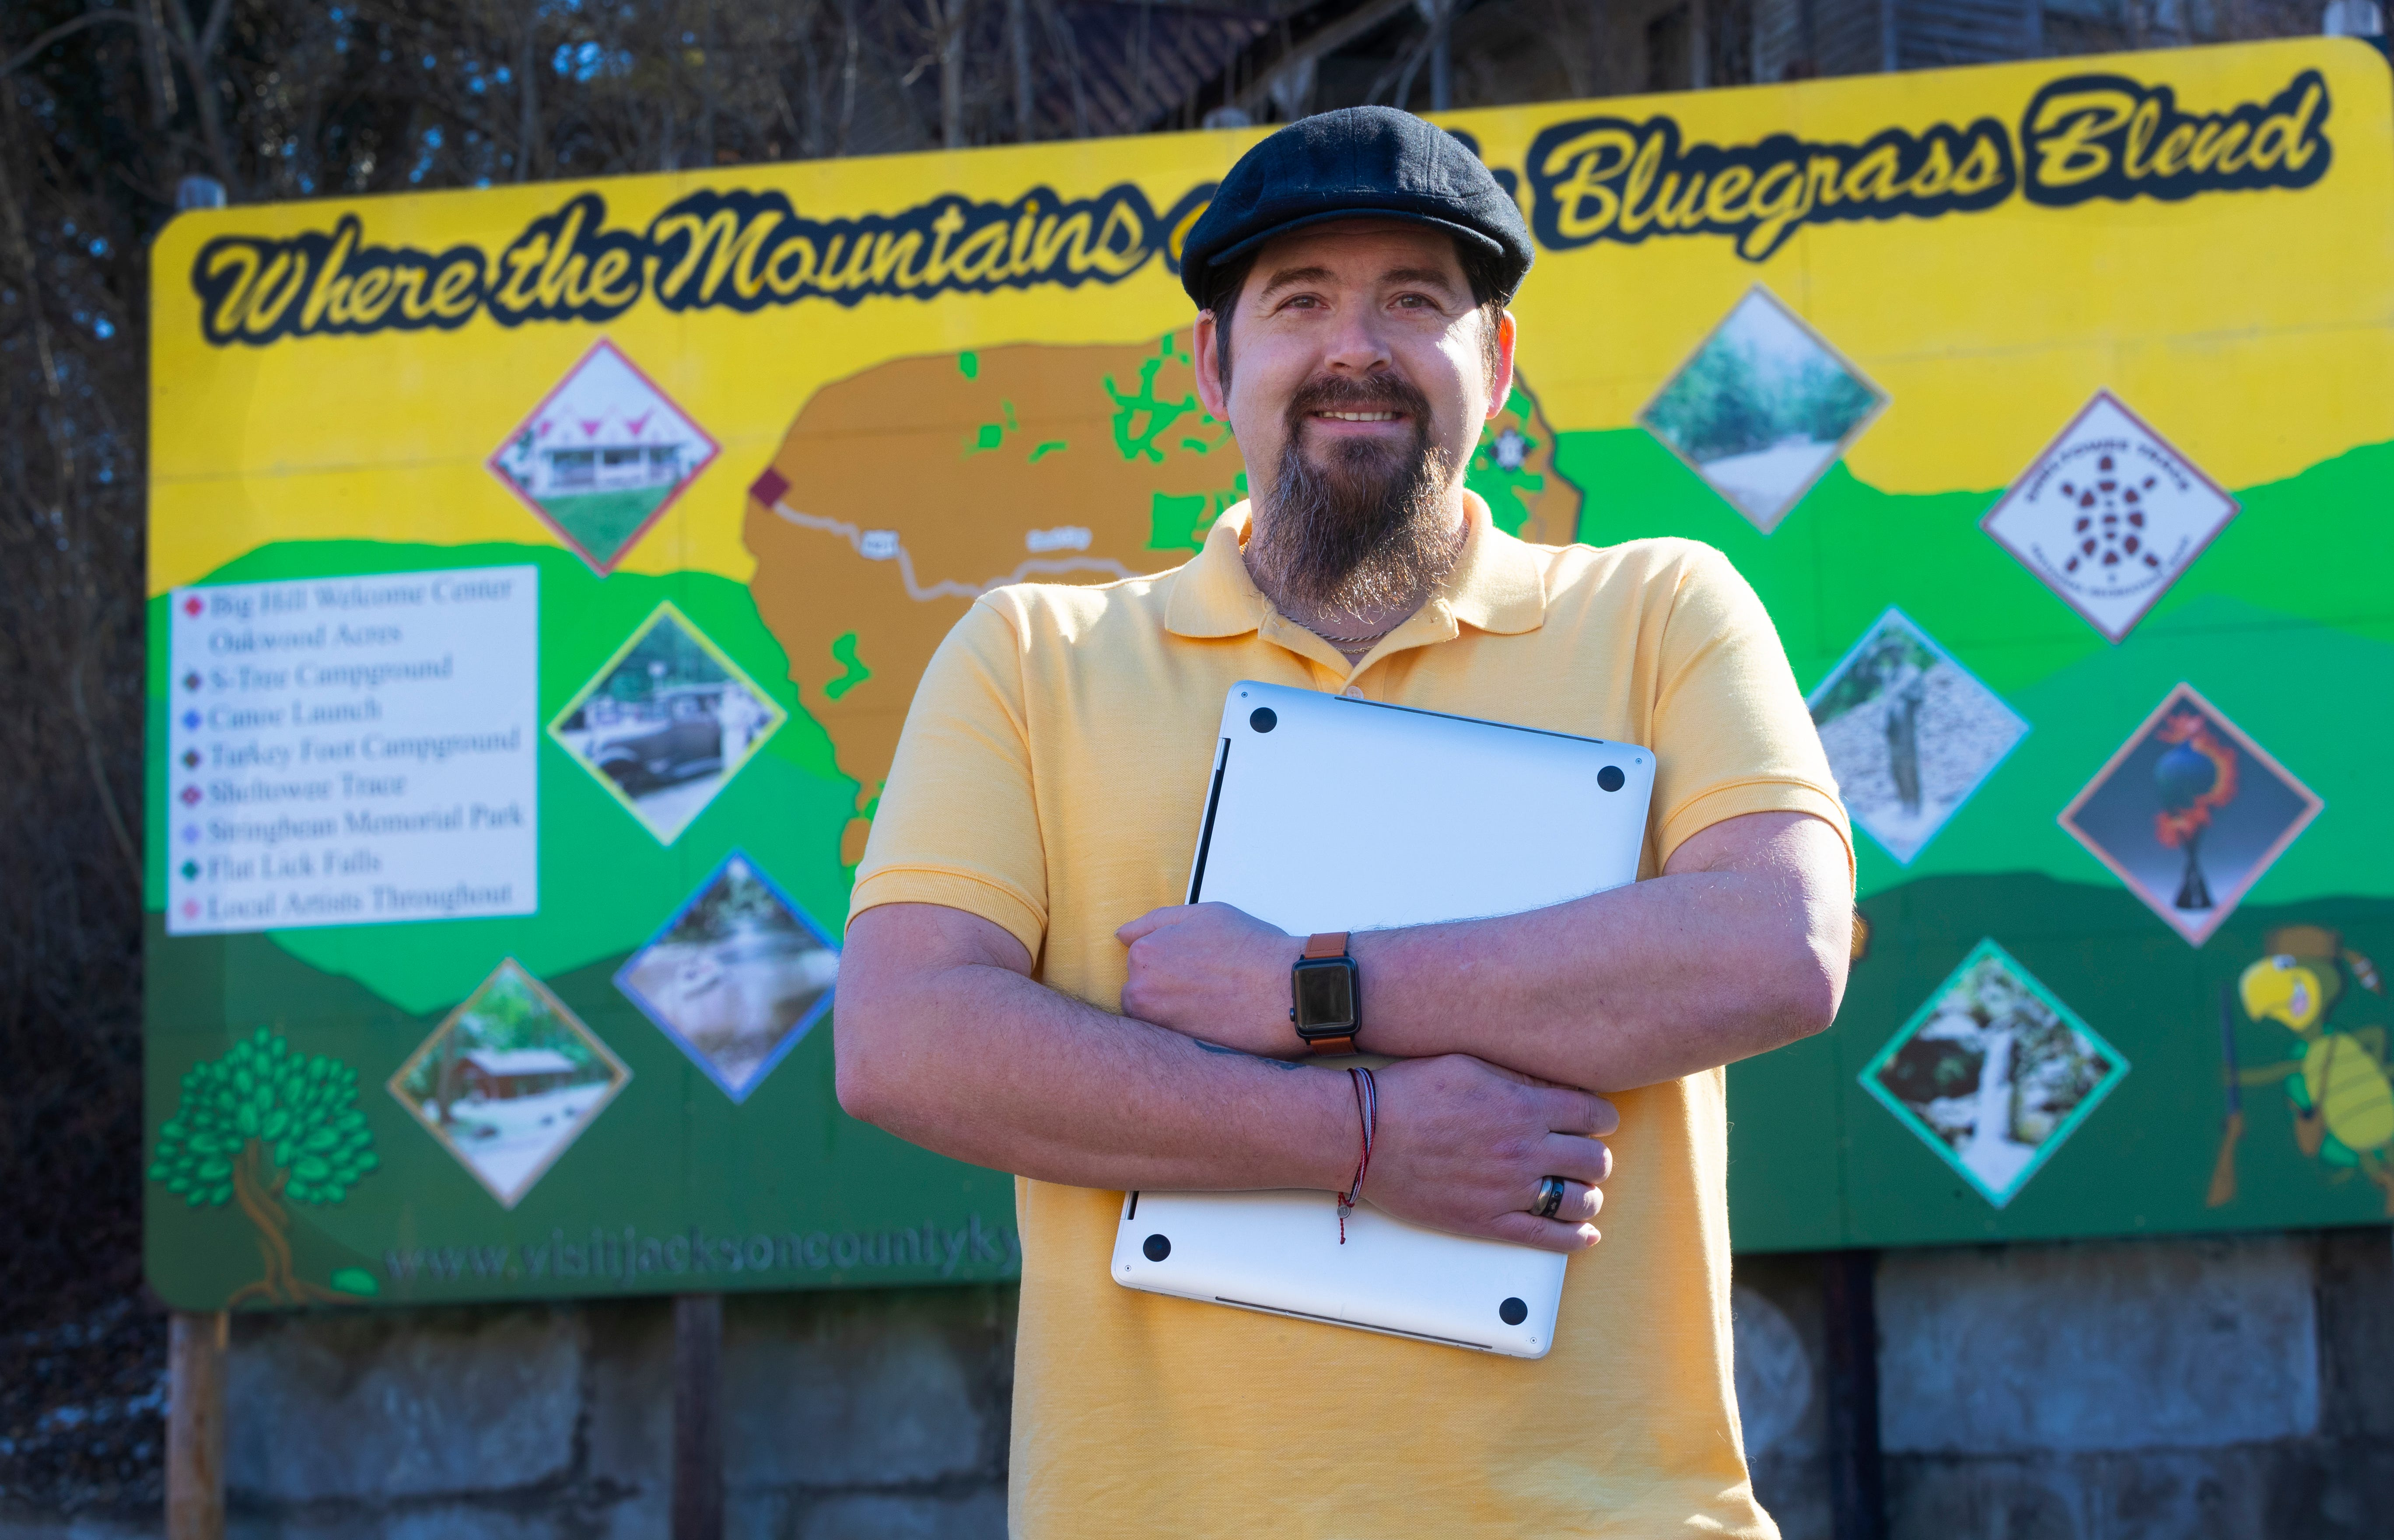 Matt Muncy, of McKee, Kentucky, went from being nearly homeless to supporting his family with a good-paying job working at home, providing tech support for Apple.